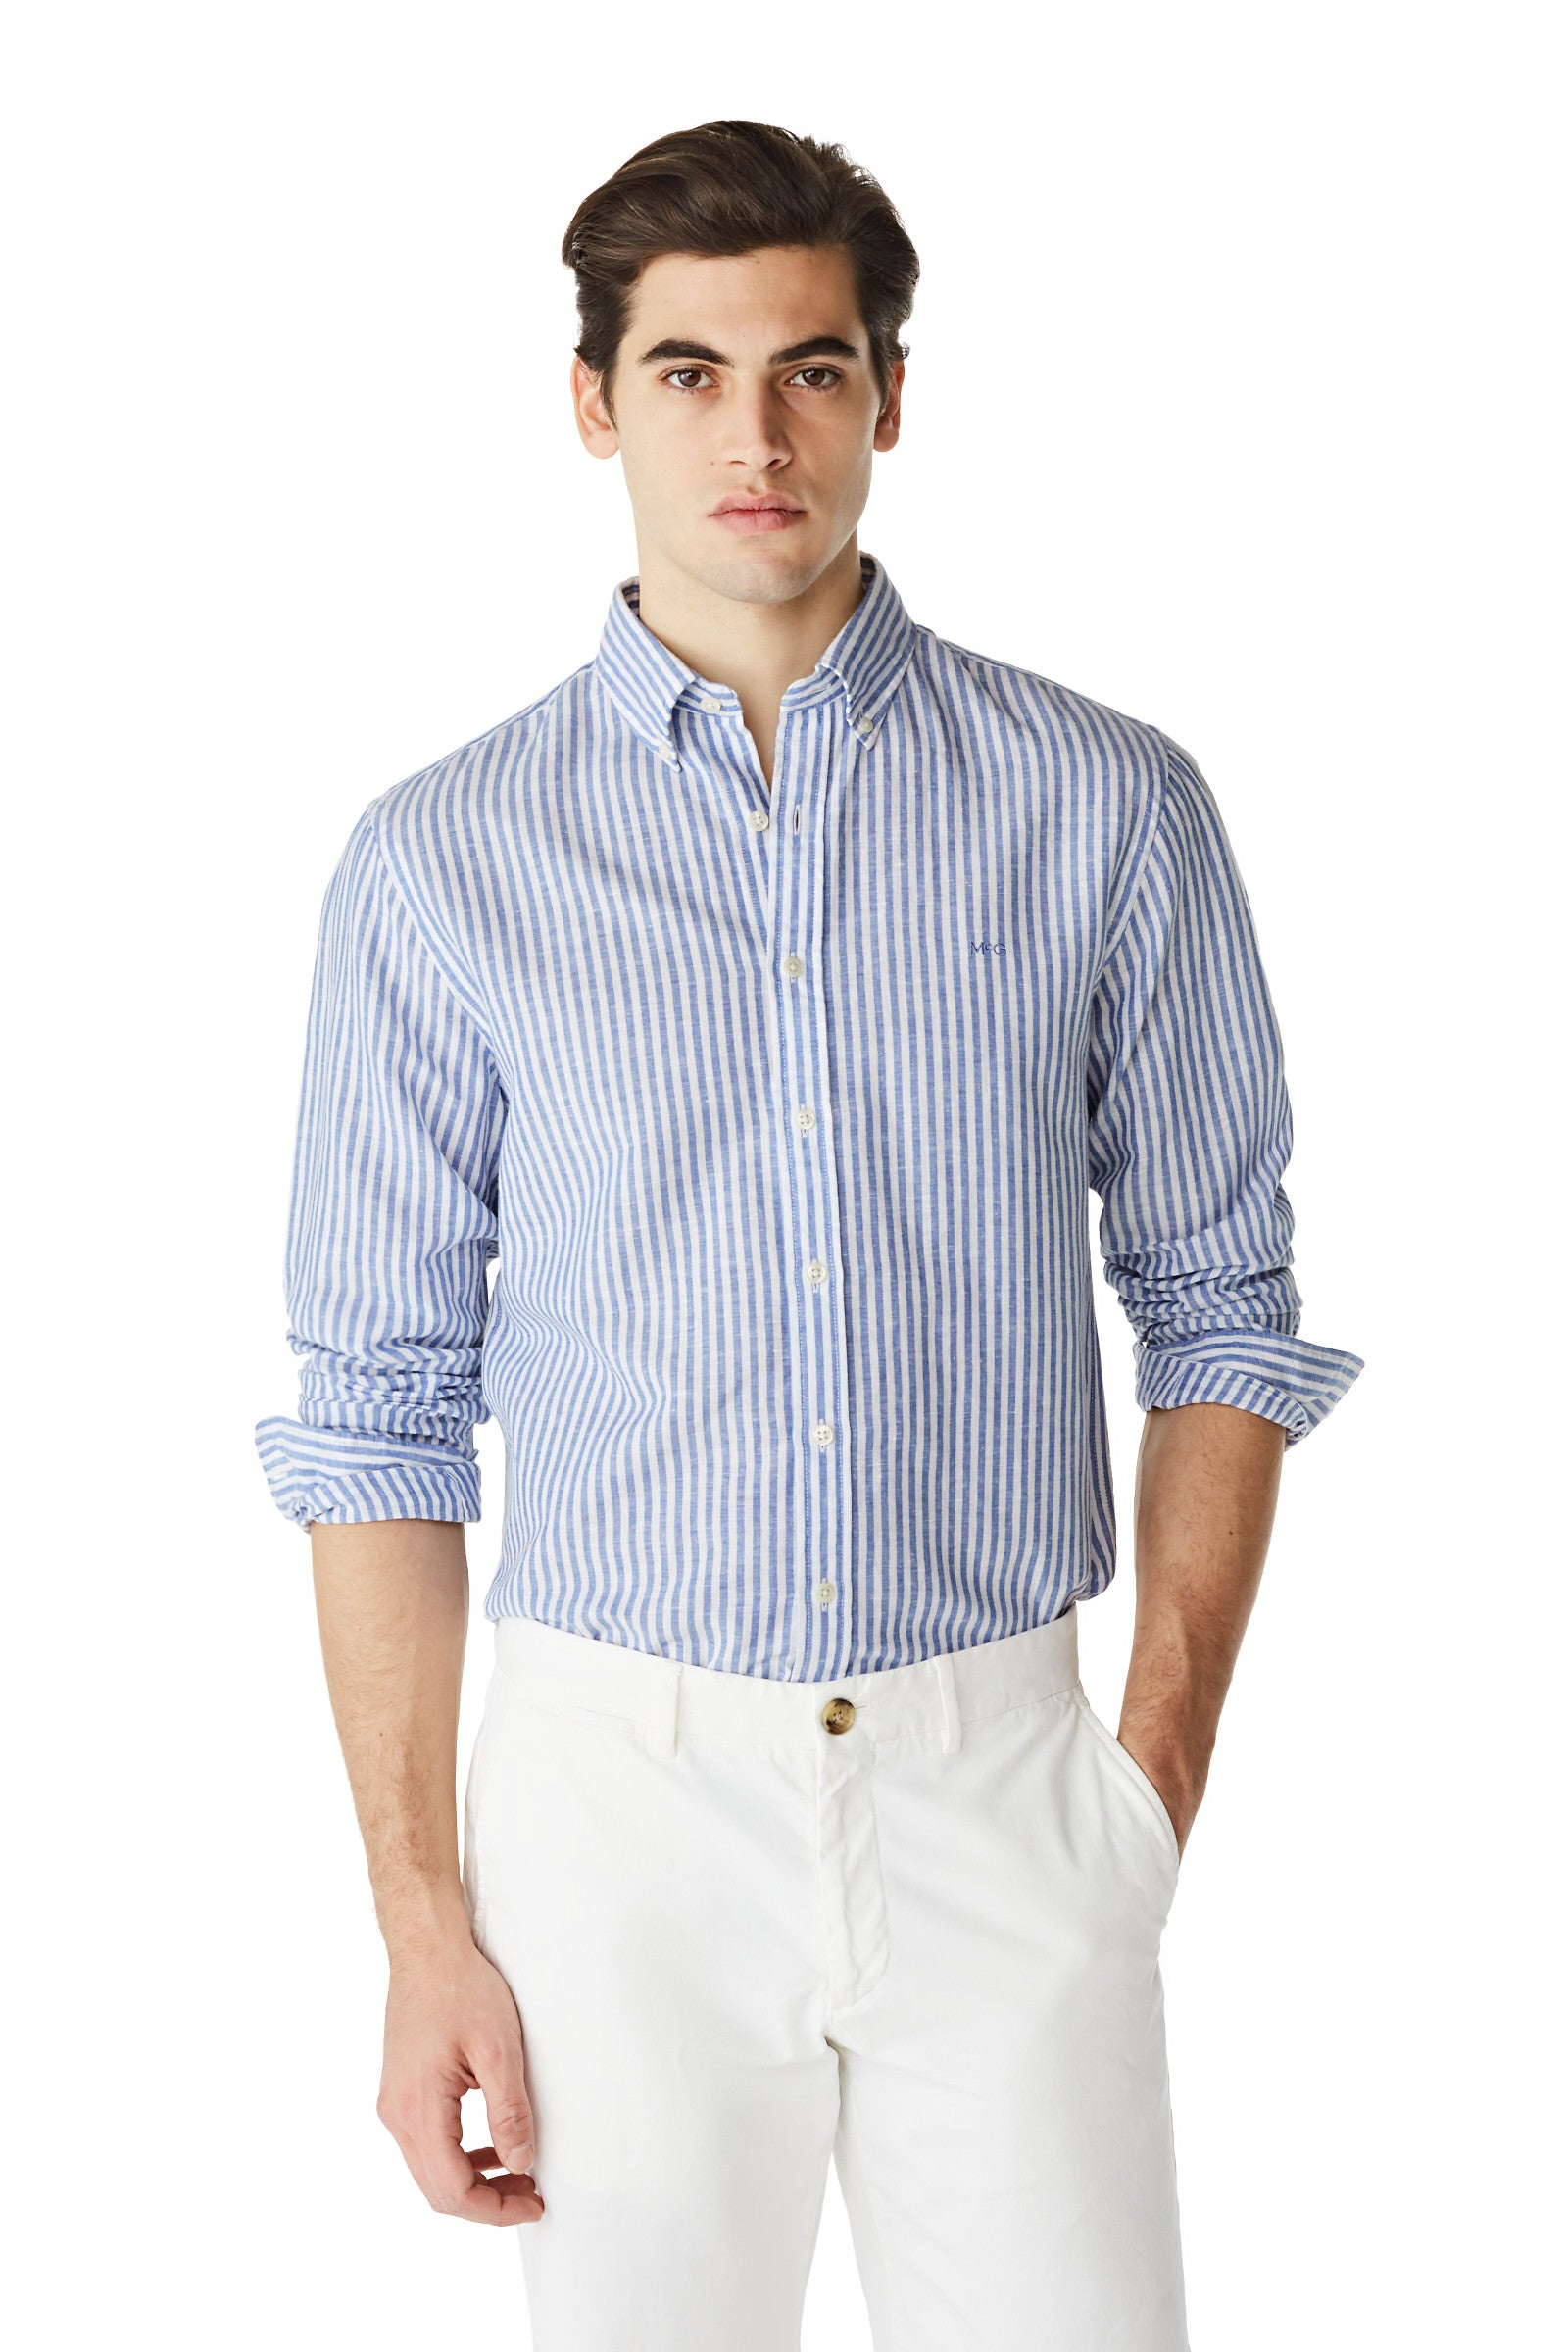 McG Regular Fit striped shirt in cotton linen blend